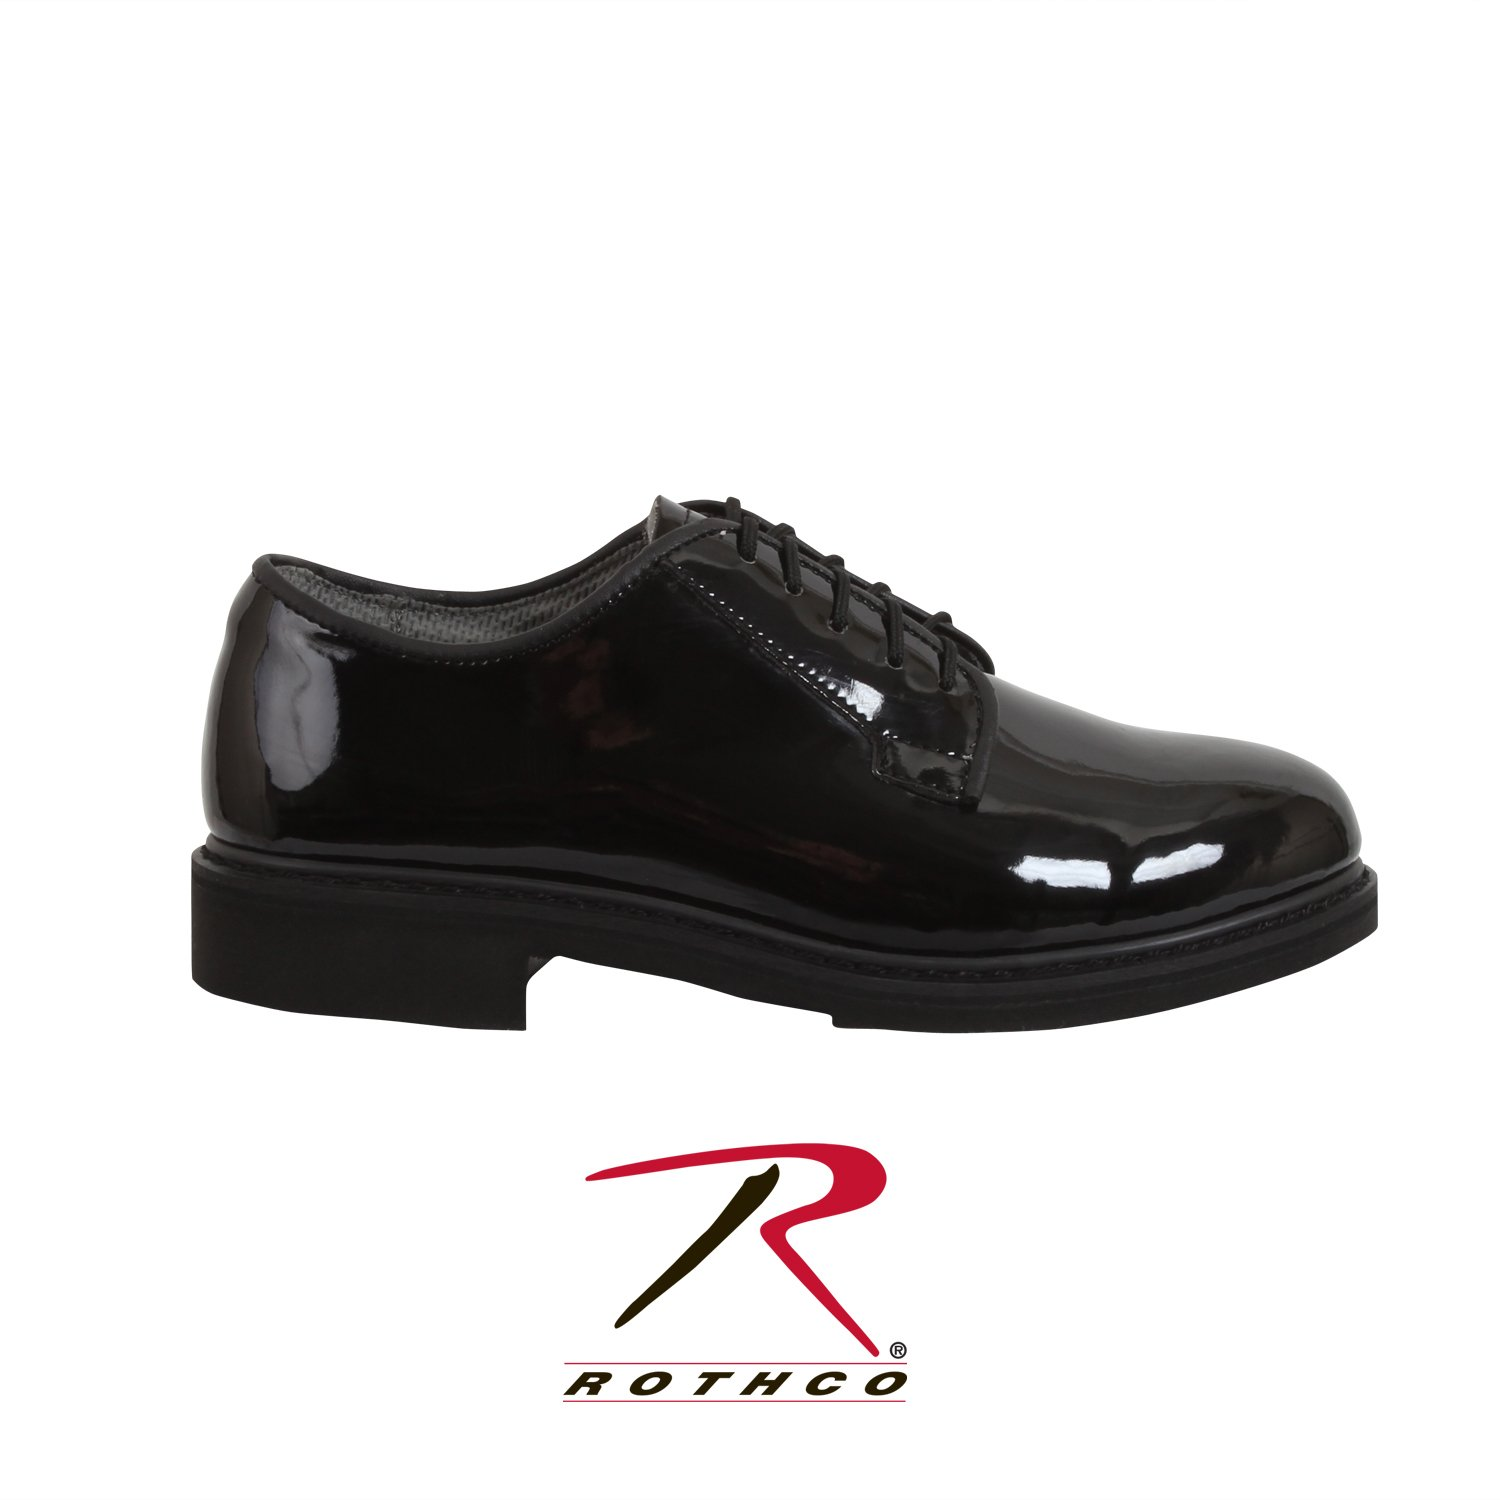 Rothco Uniform Oxford/Hi-Gloss Shoe Black, 4